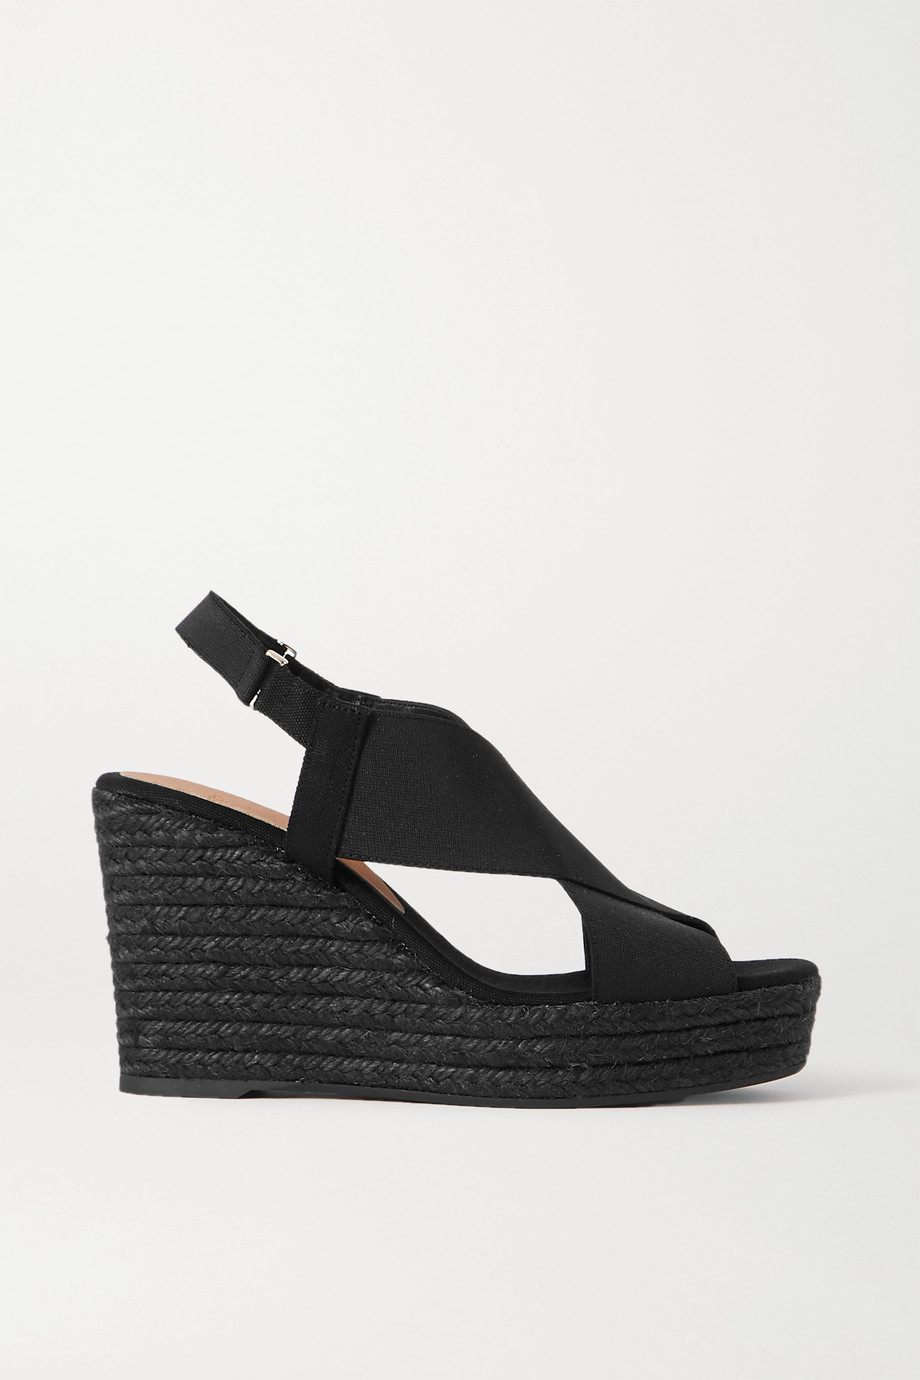 Castañer Federica canvas wedge espadrilles